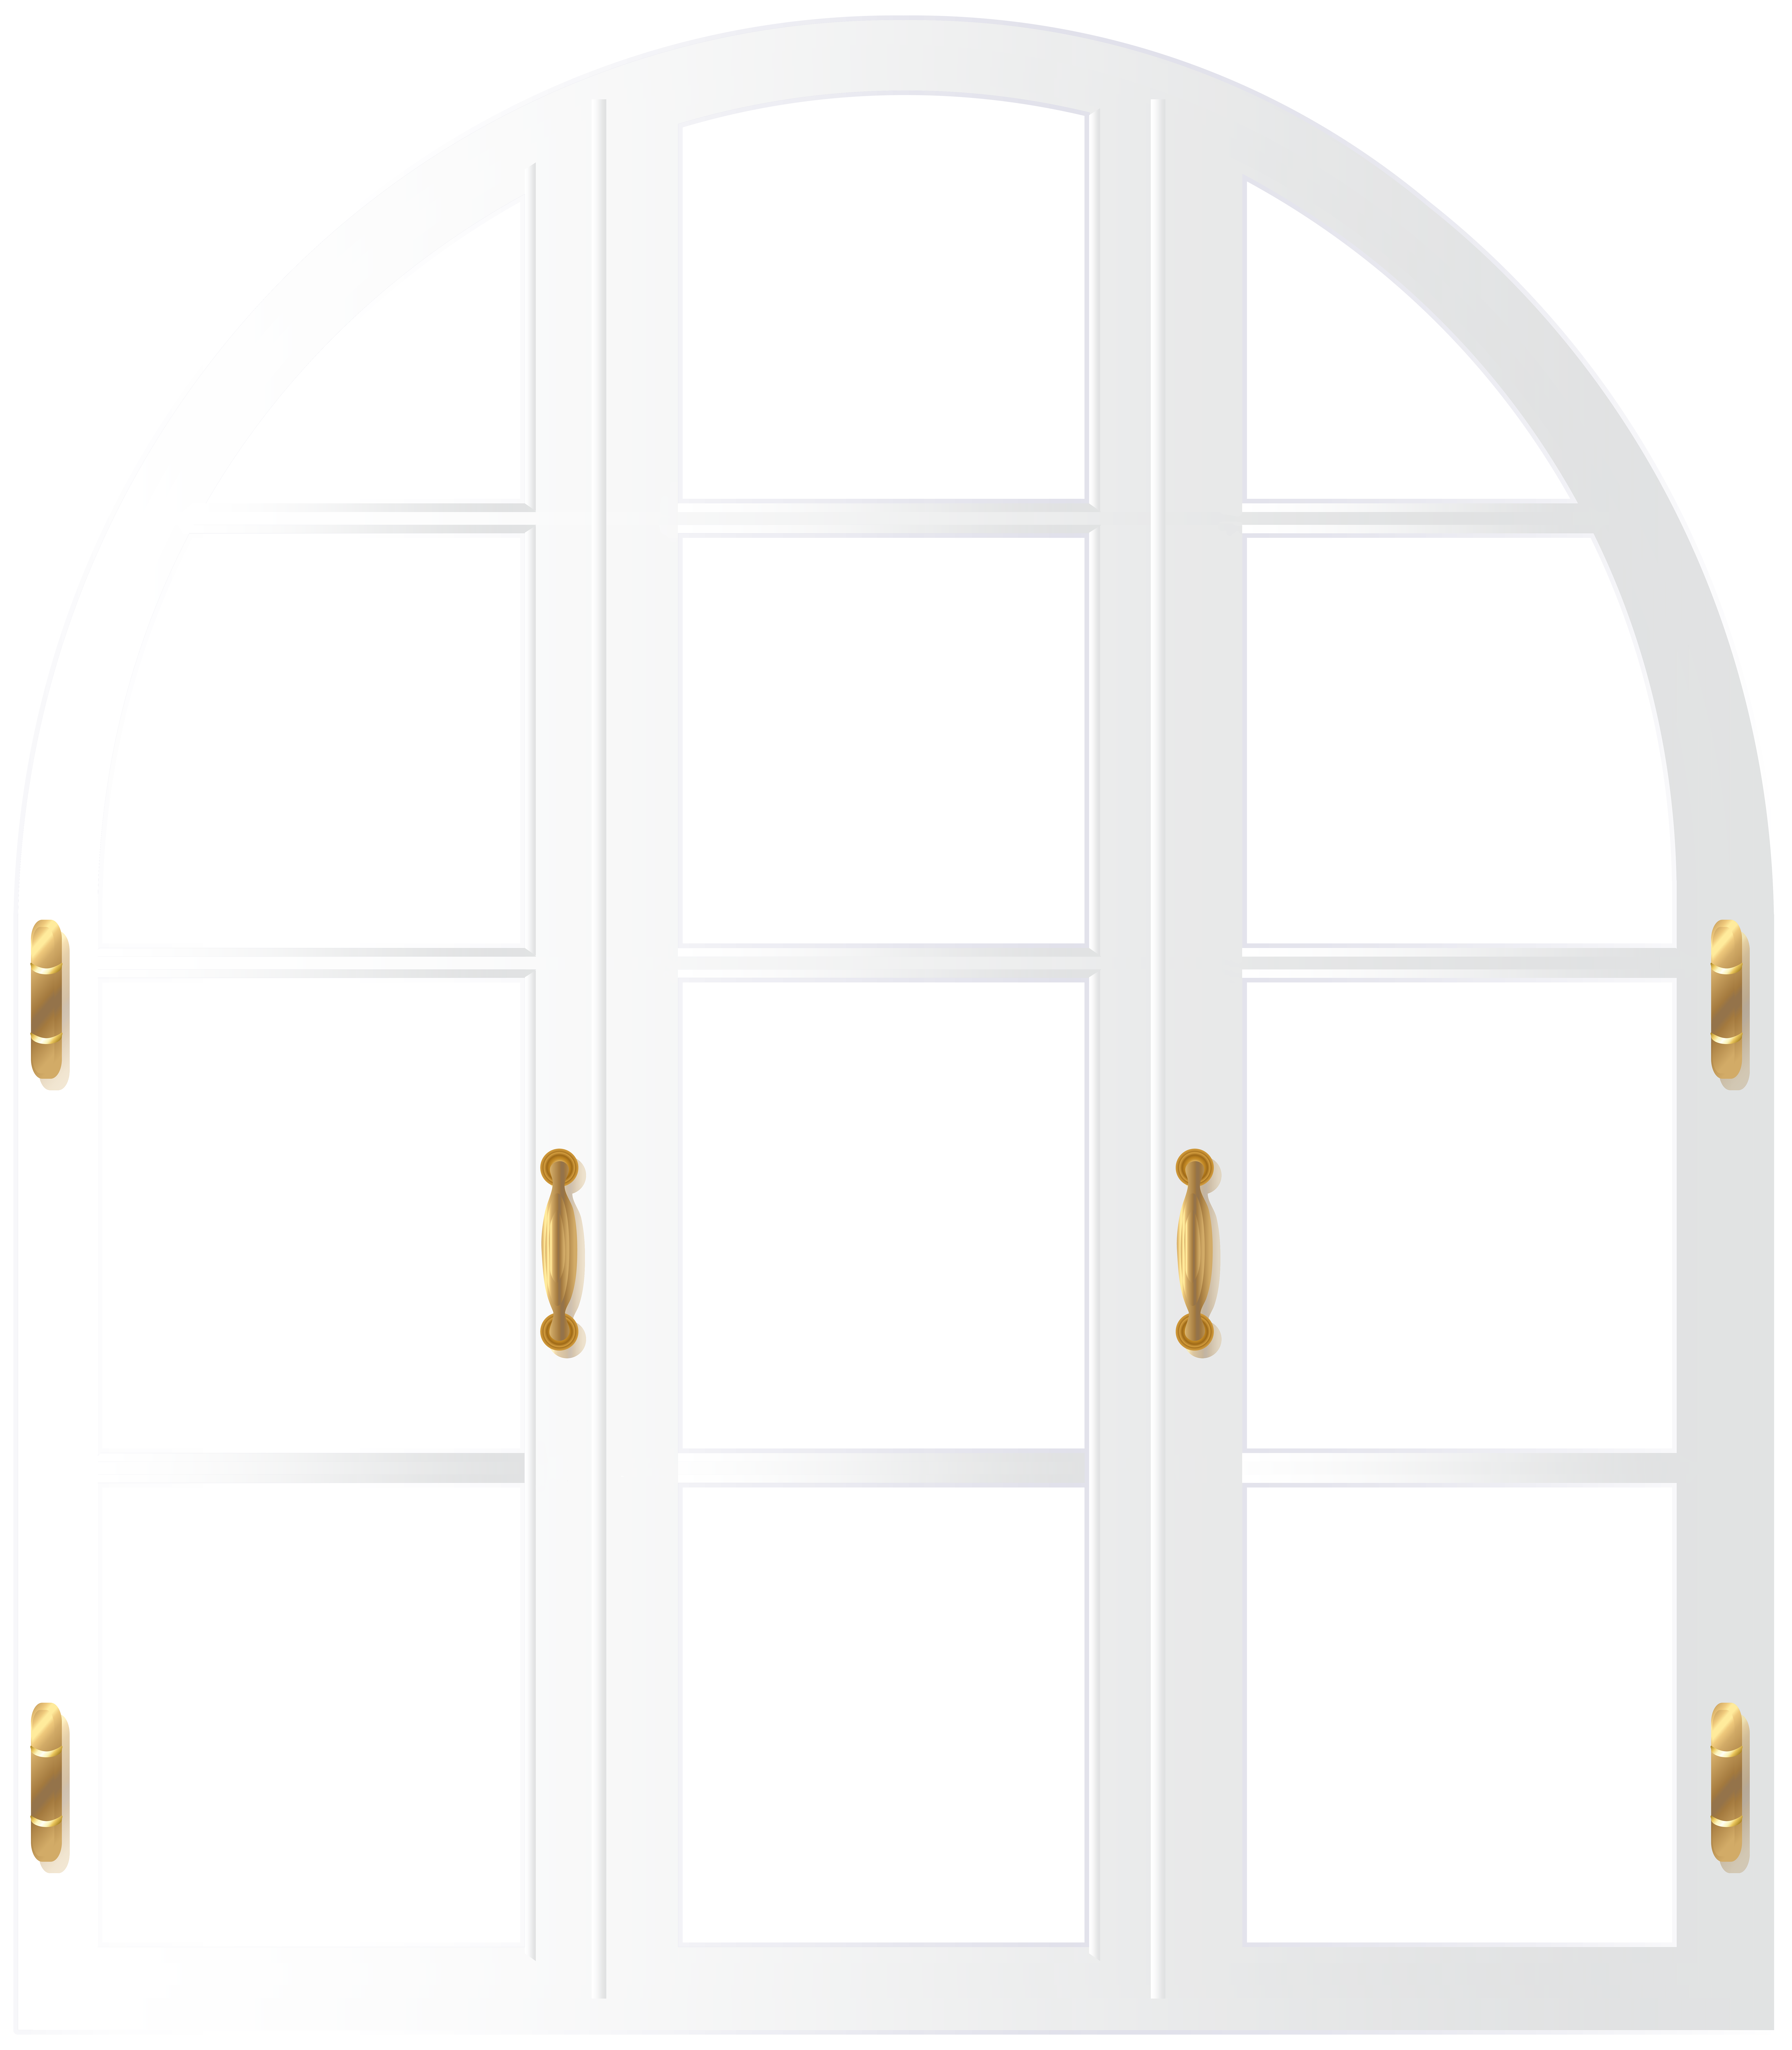 White window png clip. Win clipart clipart transparent background